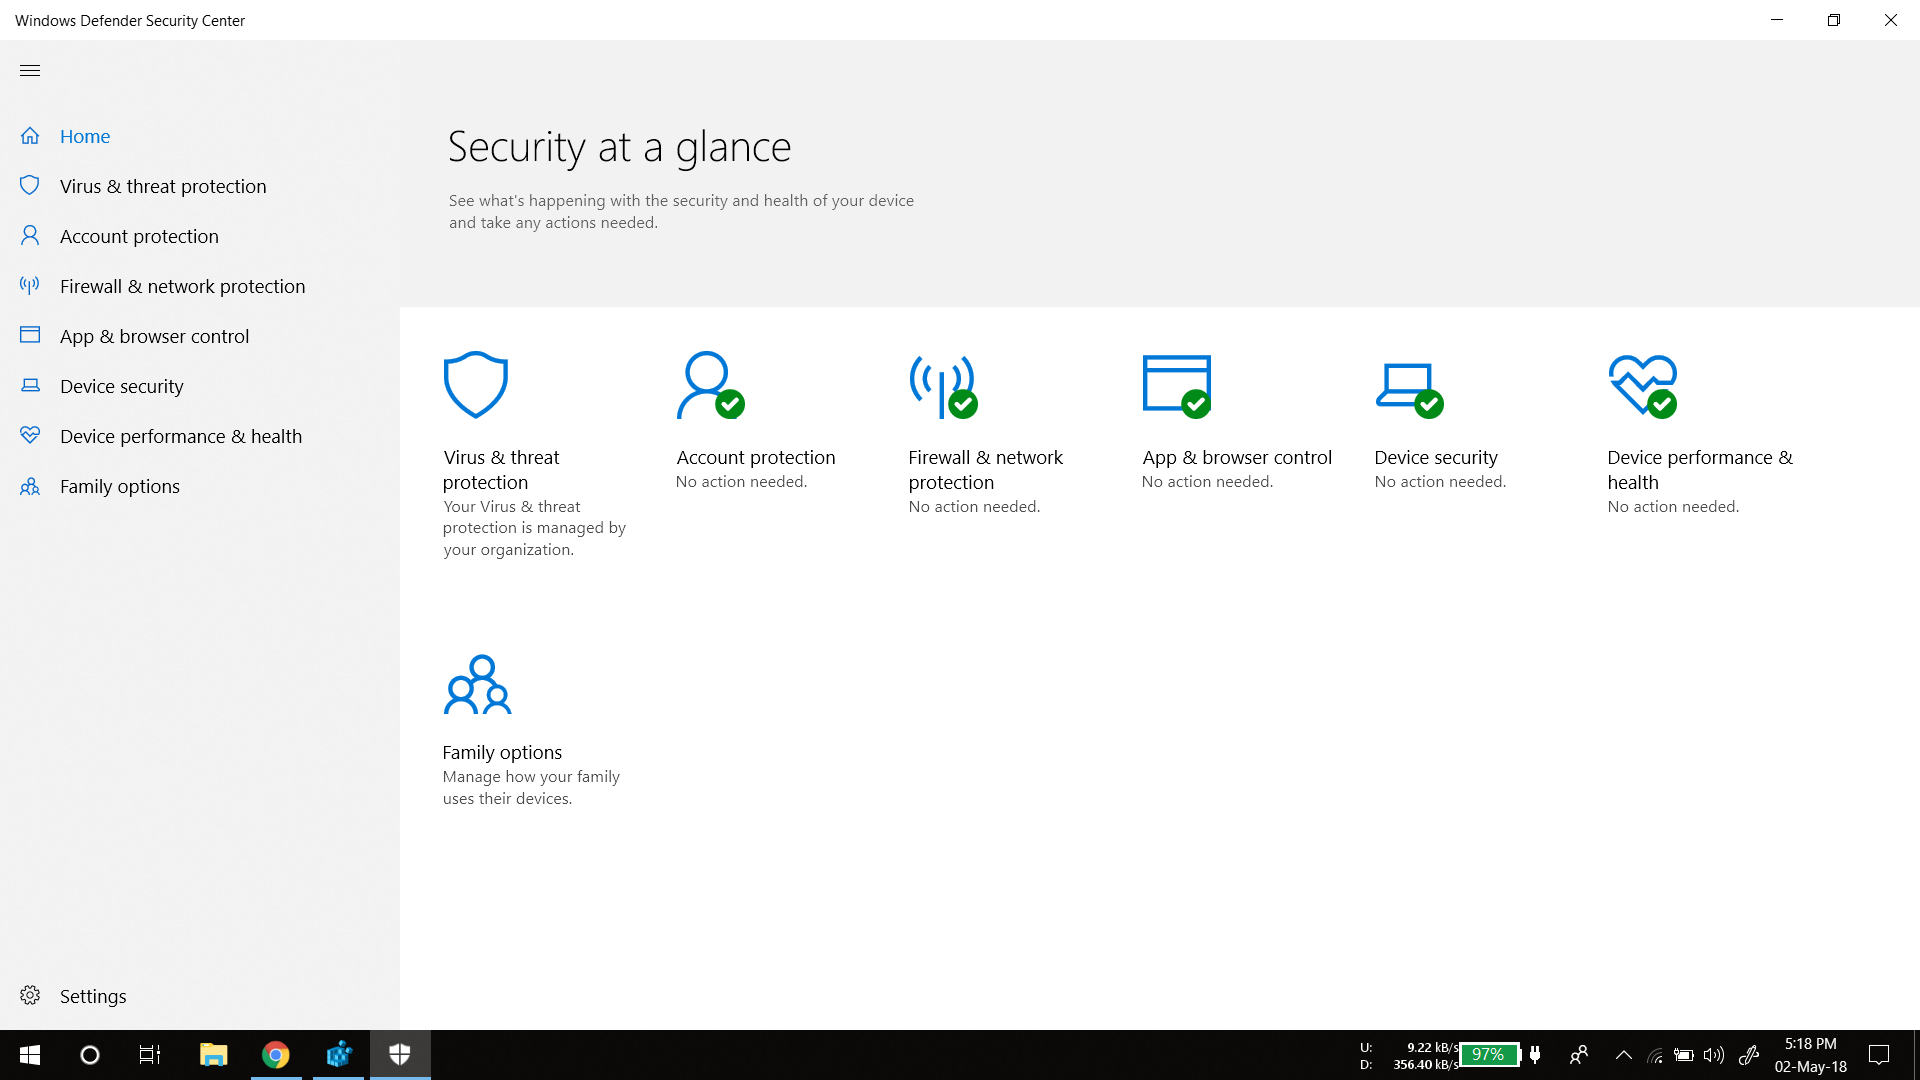 windows defender`s virus & threat proctection is managed by my organization 7716a124-dc9e-466d-a71e-36c5ce7897c9?upload=true.png